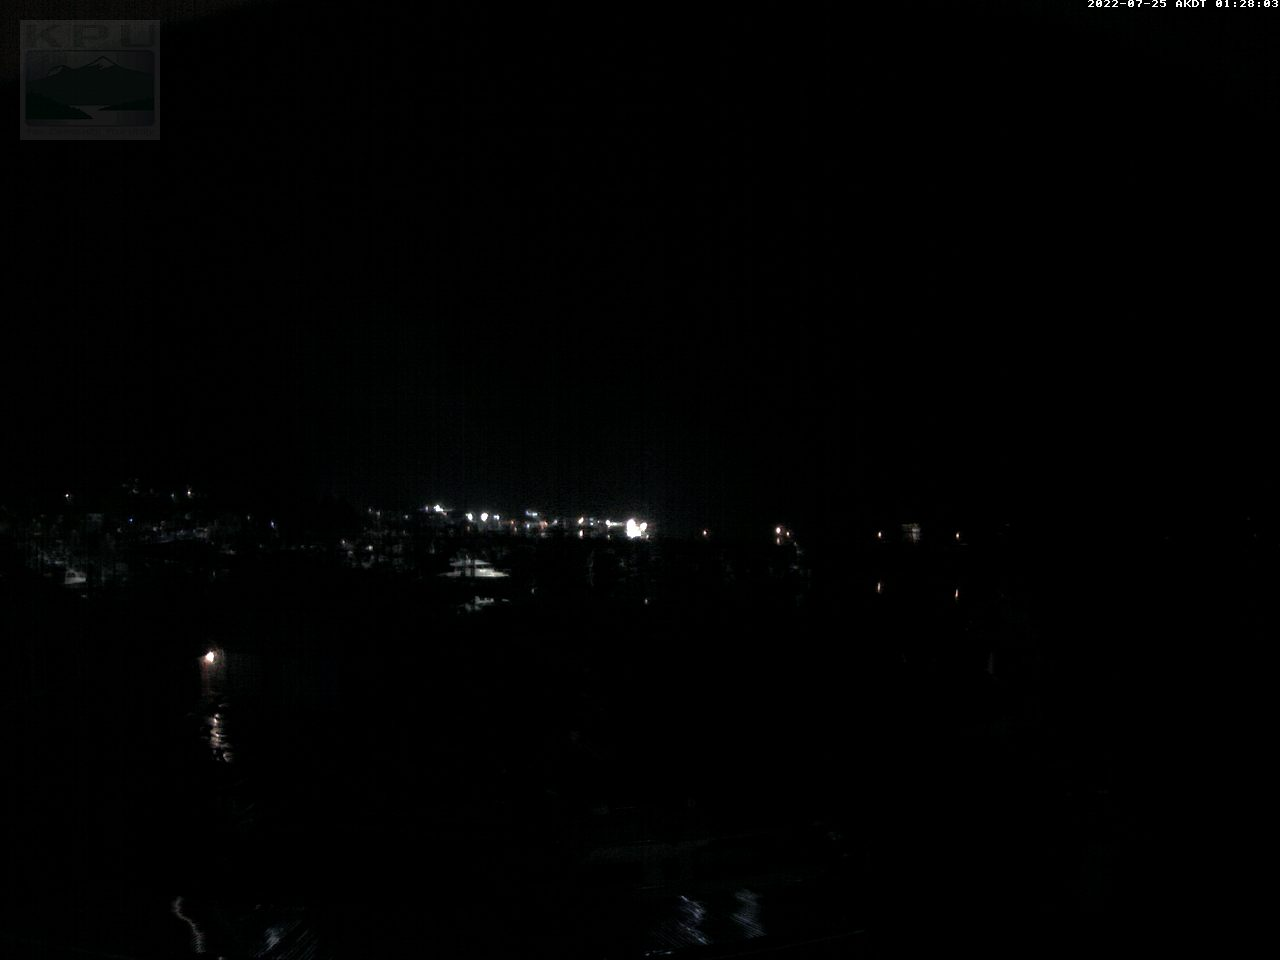 Current Ketchikan Webcam #6 Alaska-sized Image